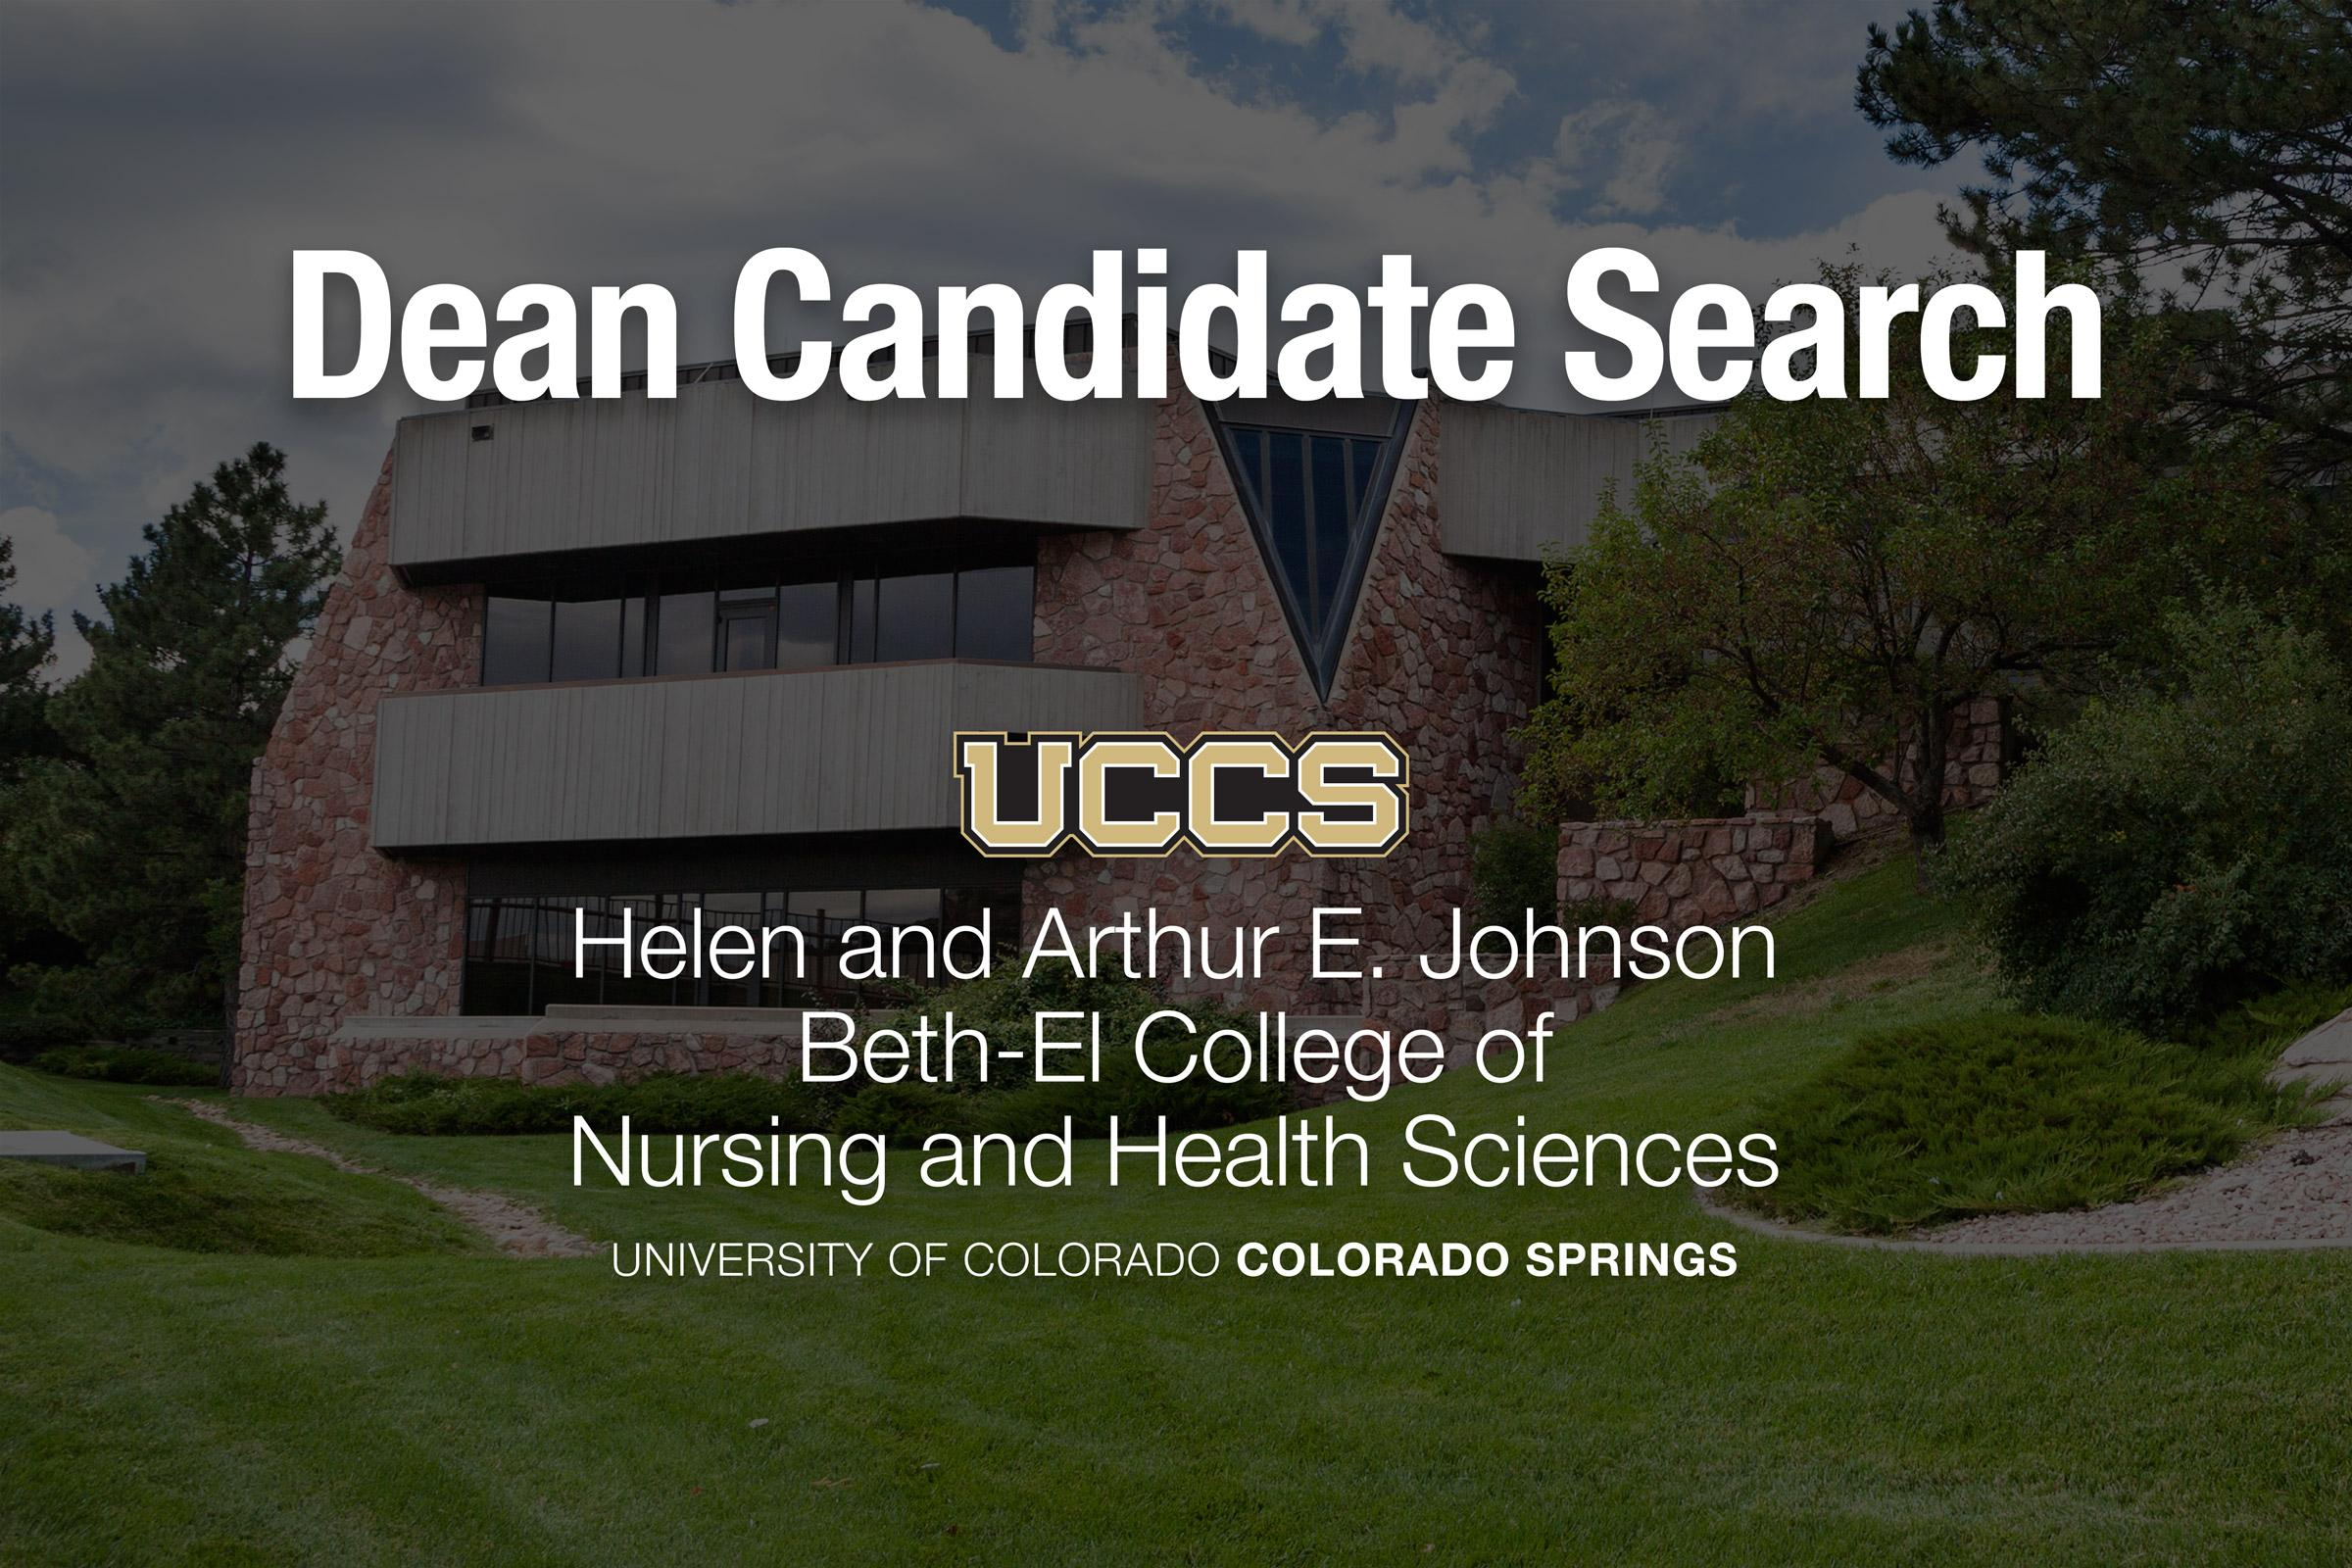 Search begins for nursing and health sciences dean – UCCS